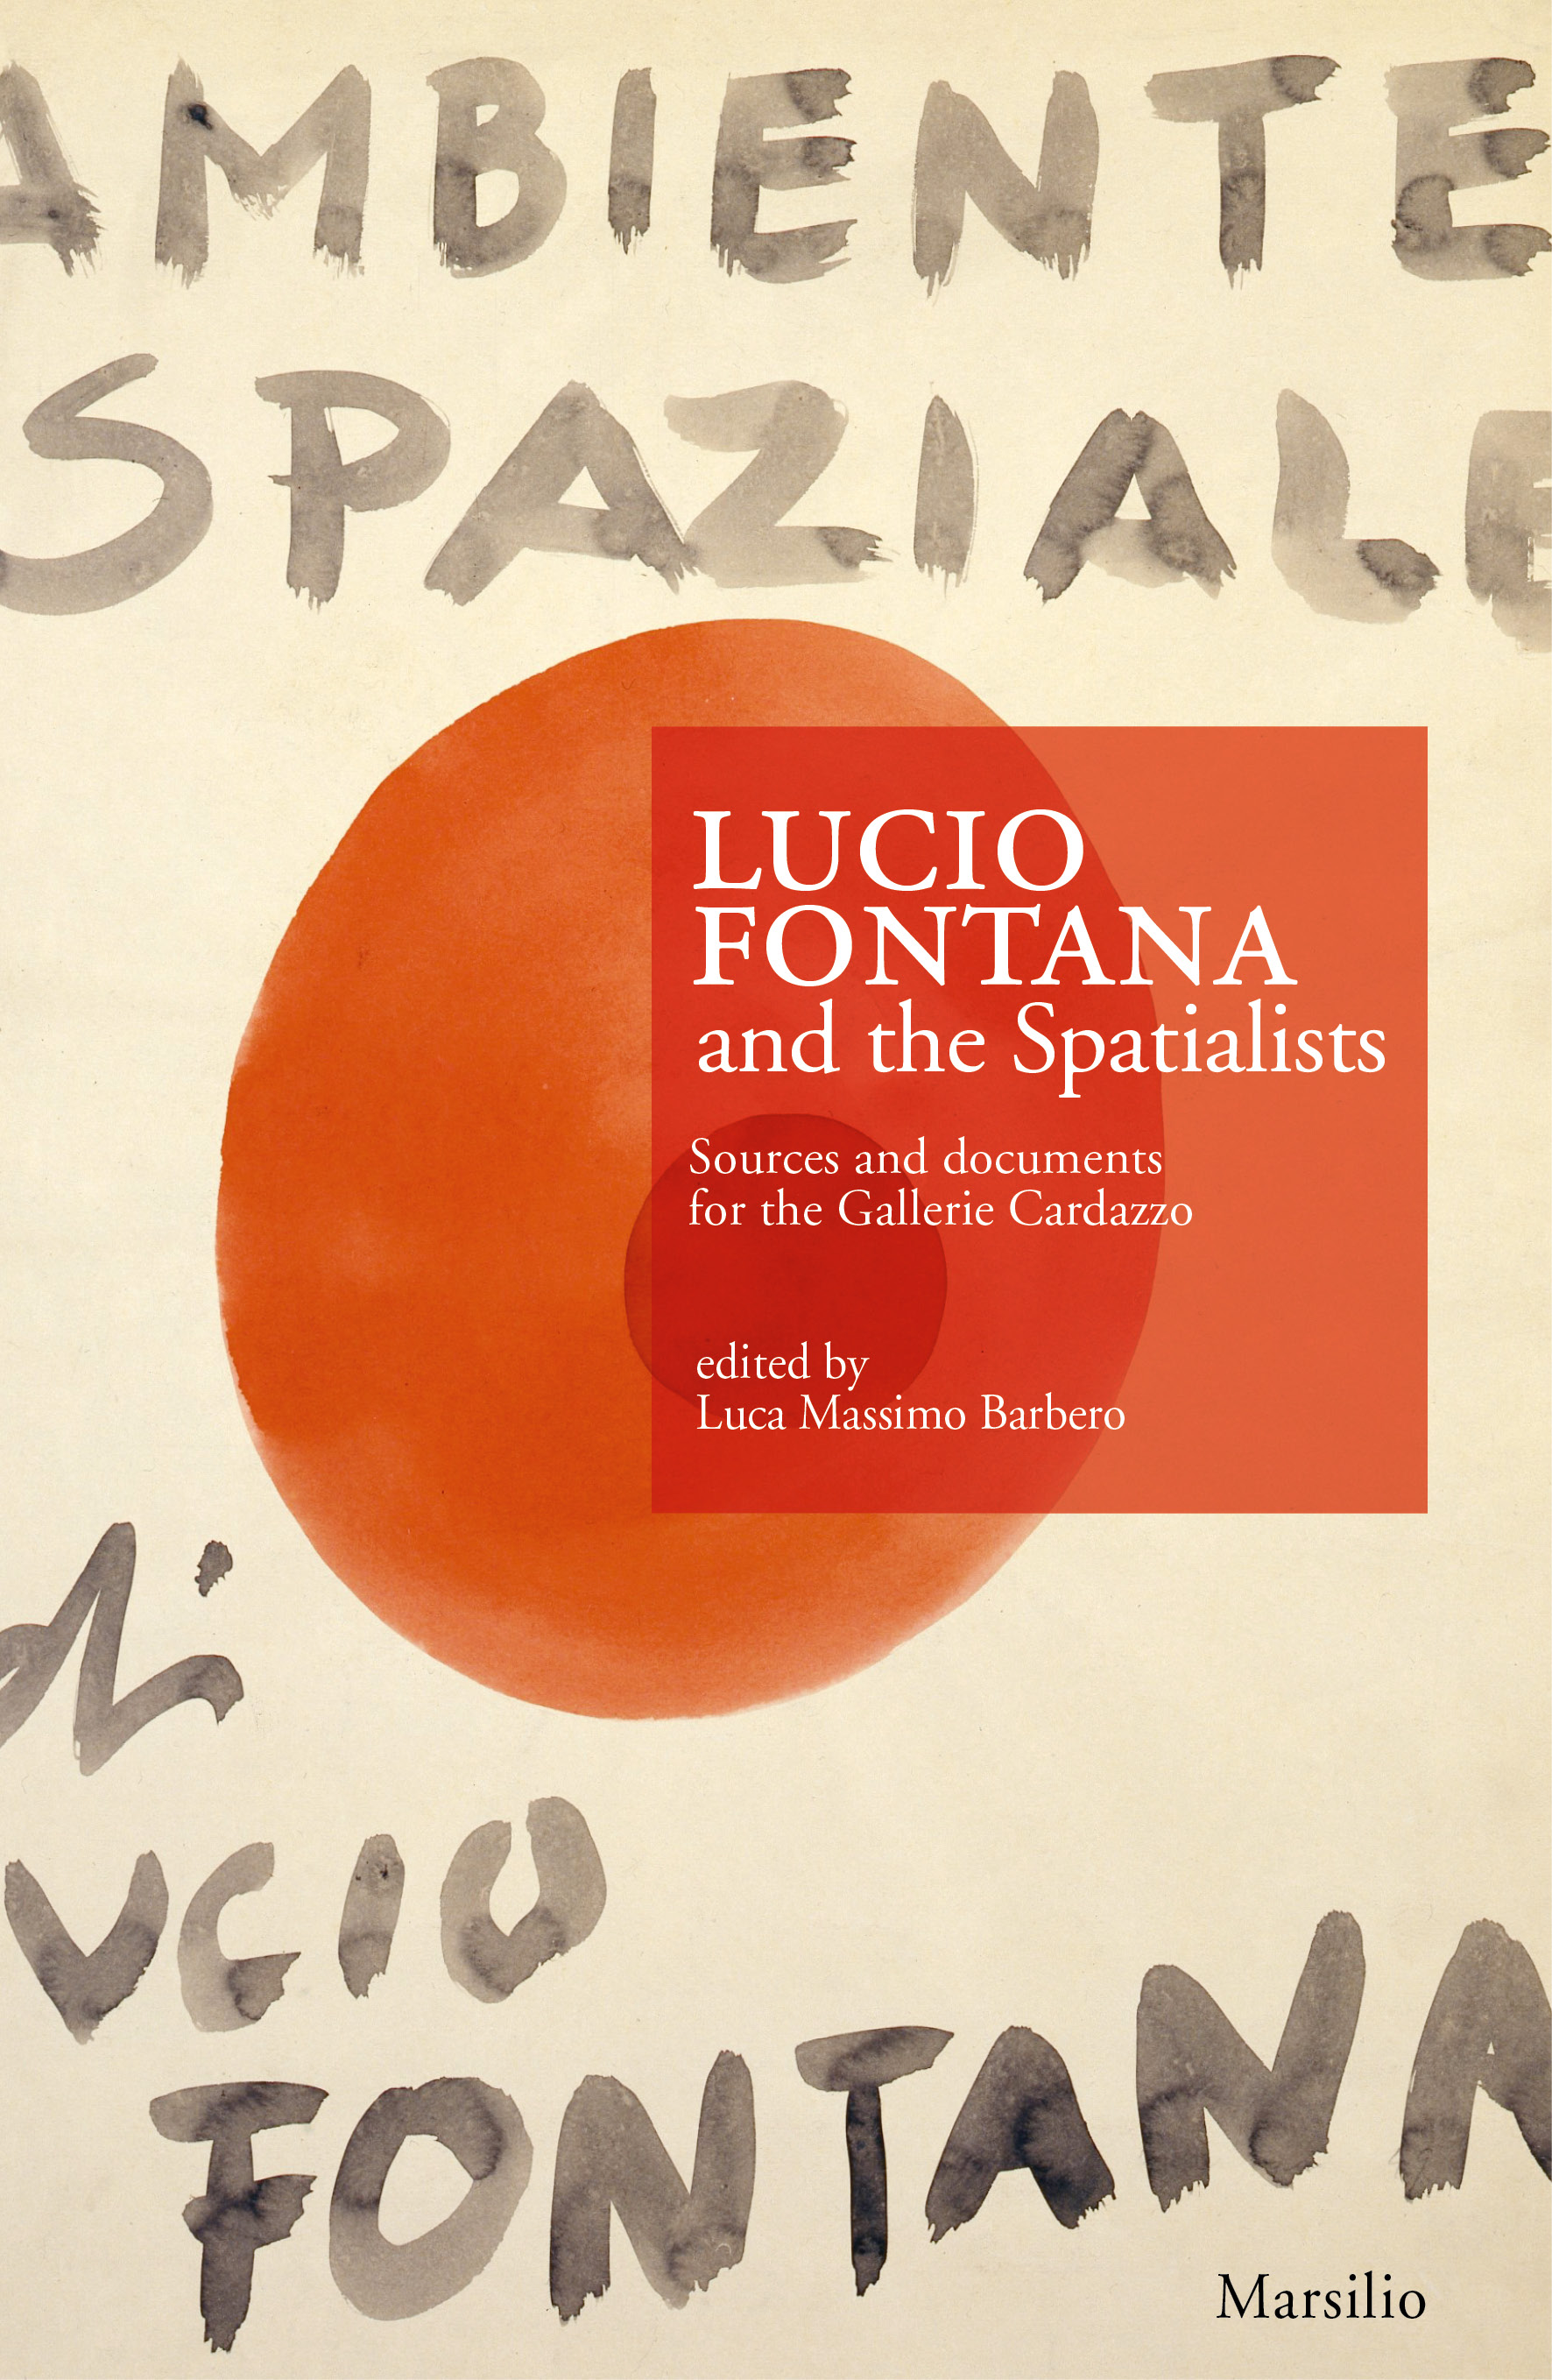 Lucio Fontana and the Spatialists